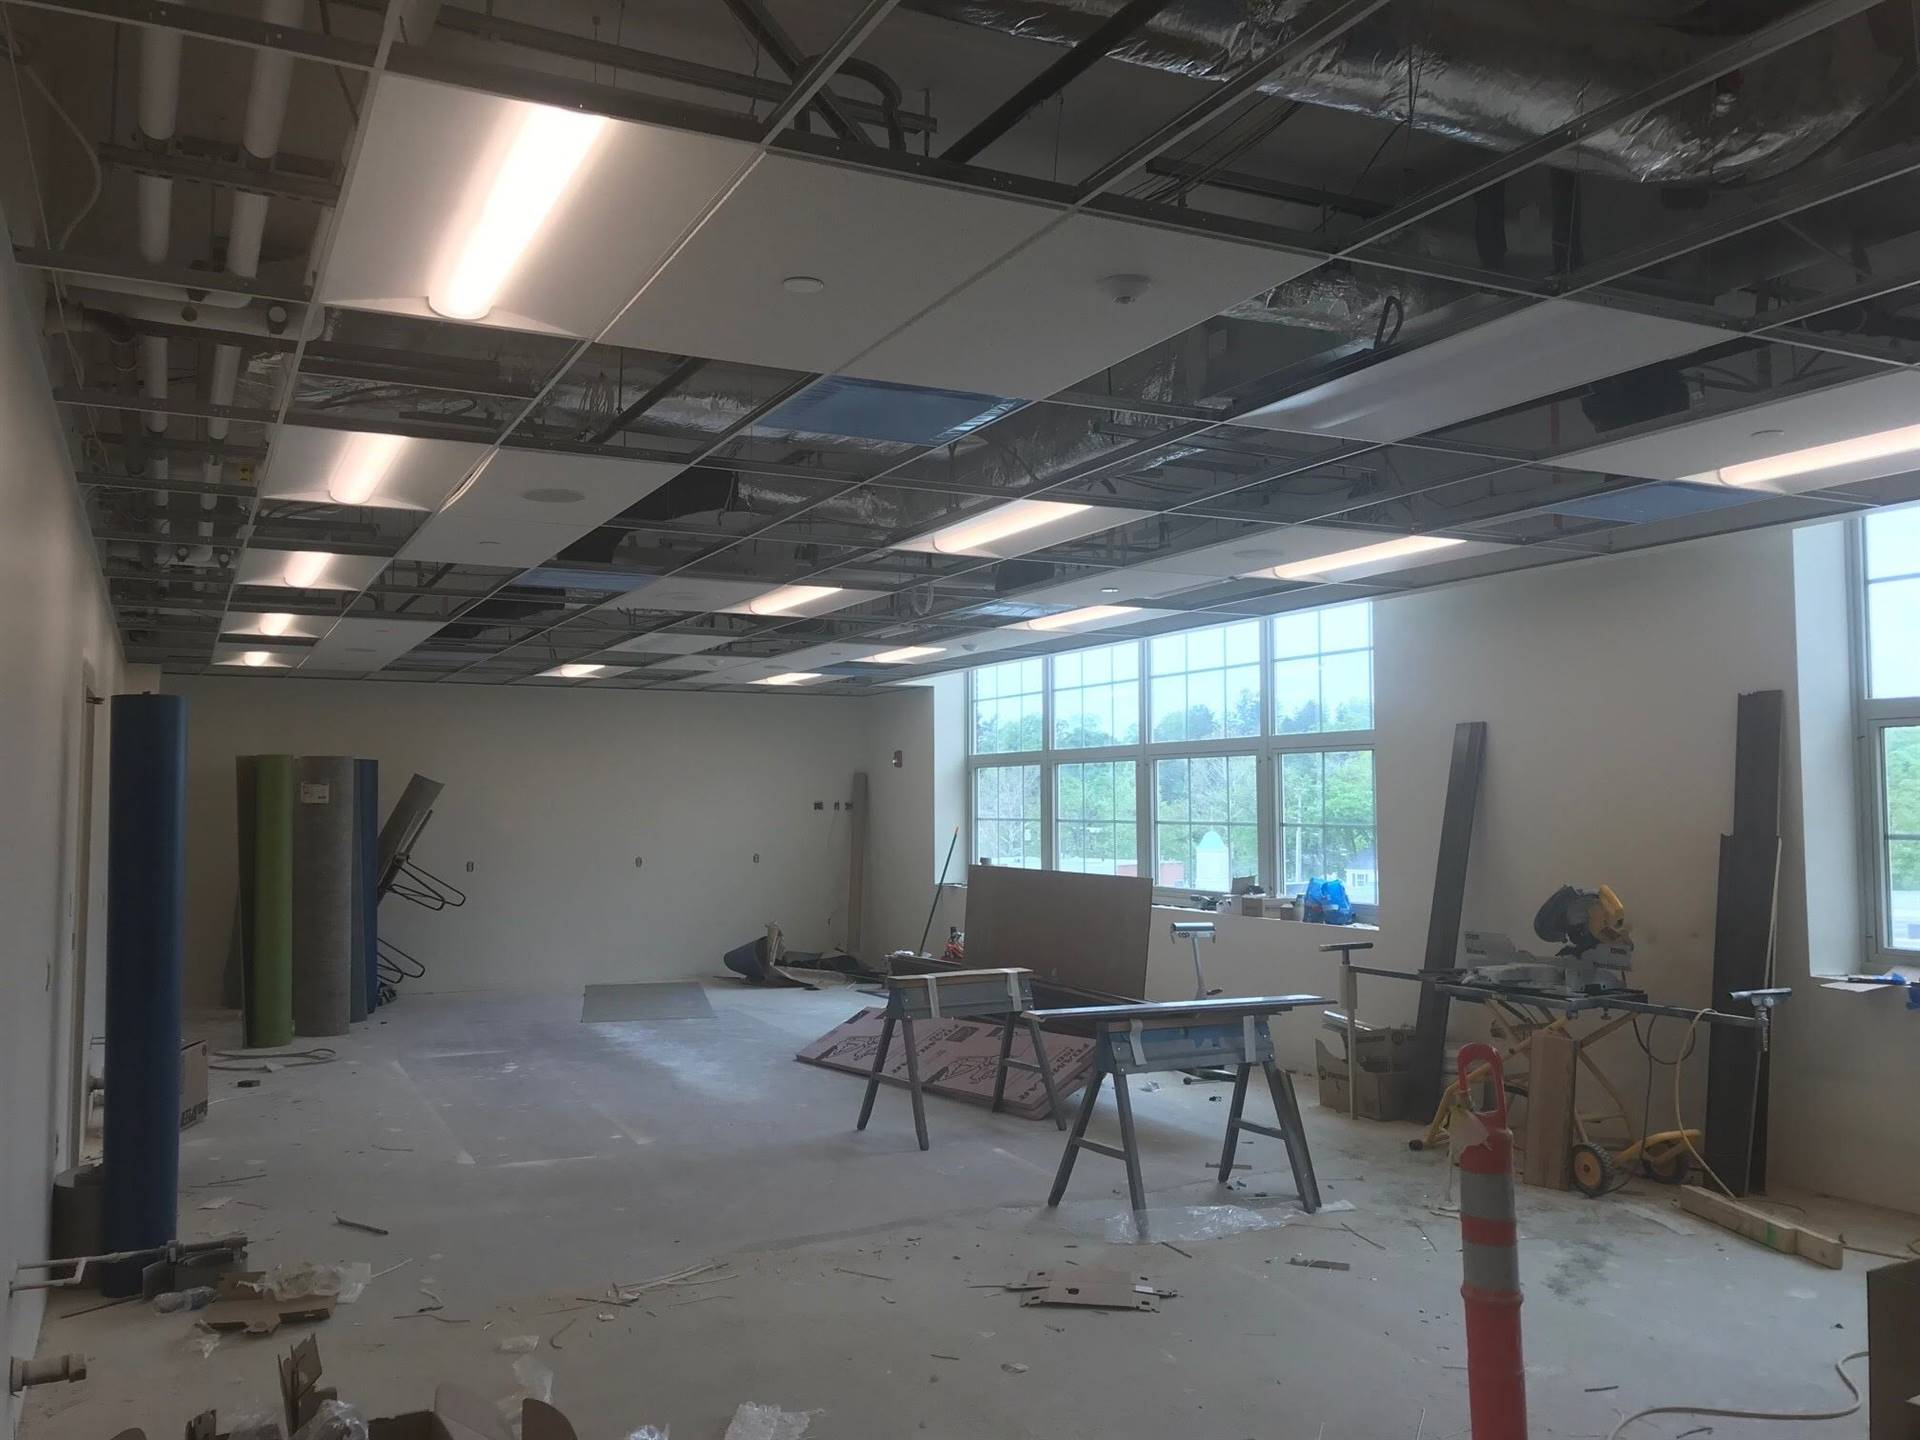 CFIS - Construction Photo - May 2019